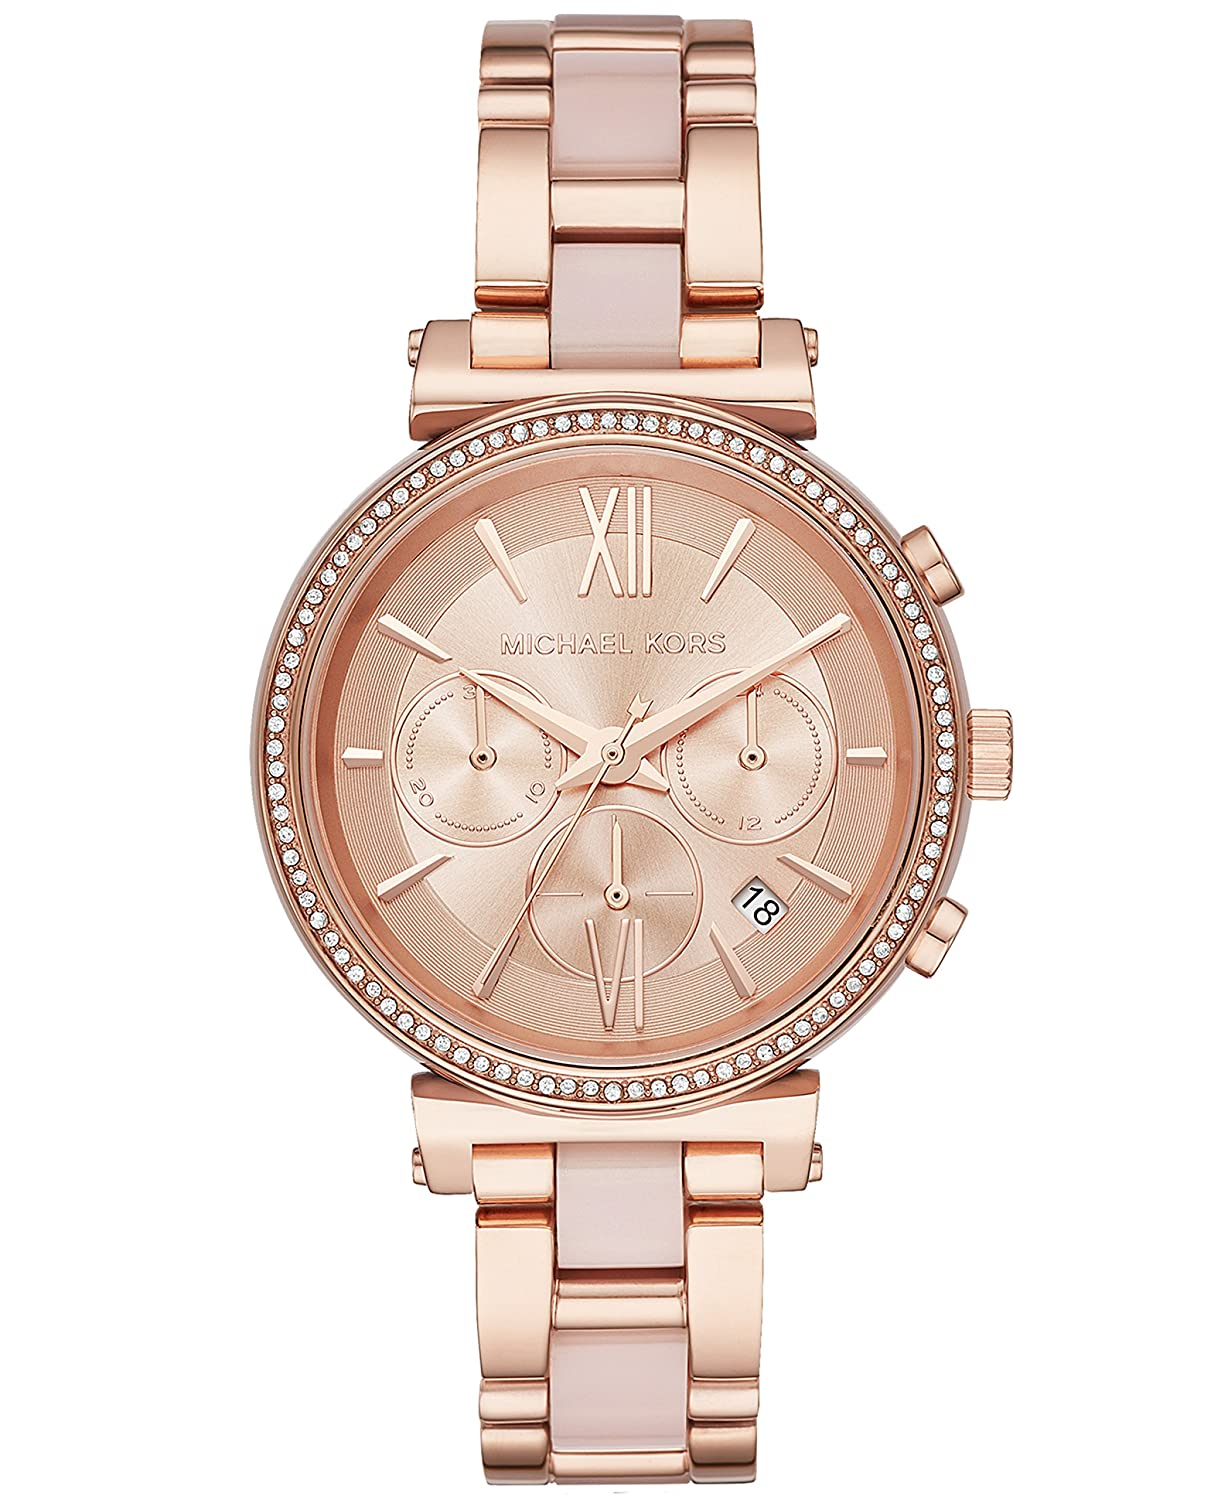 0ba66a42cafe Amazon.com  Michael Kors Women s Sofie Analog Display Analog Quartz Rose  Gold Watch MK6560  Watches